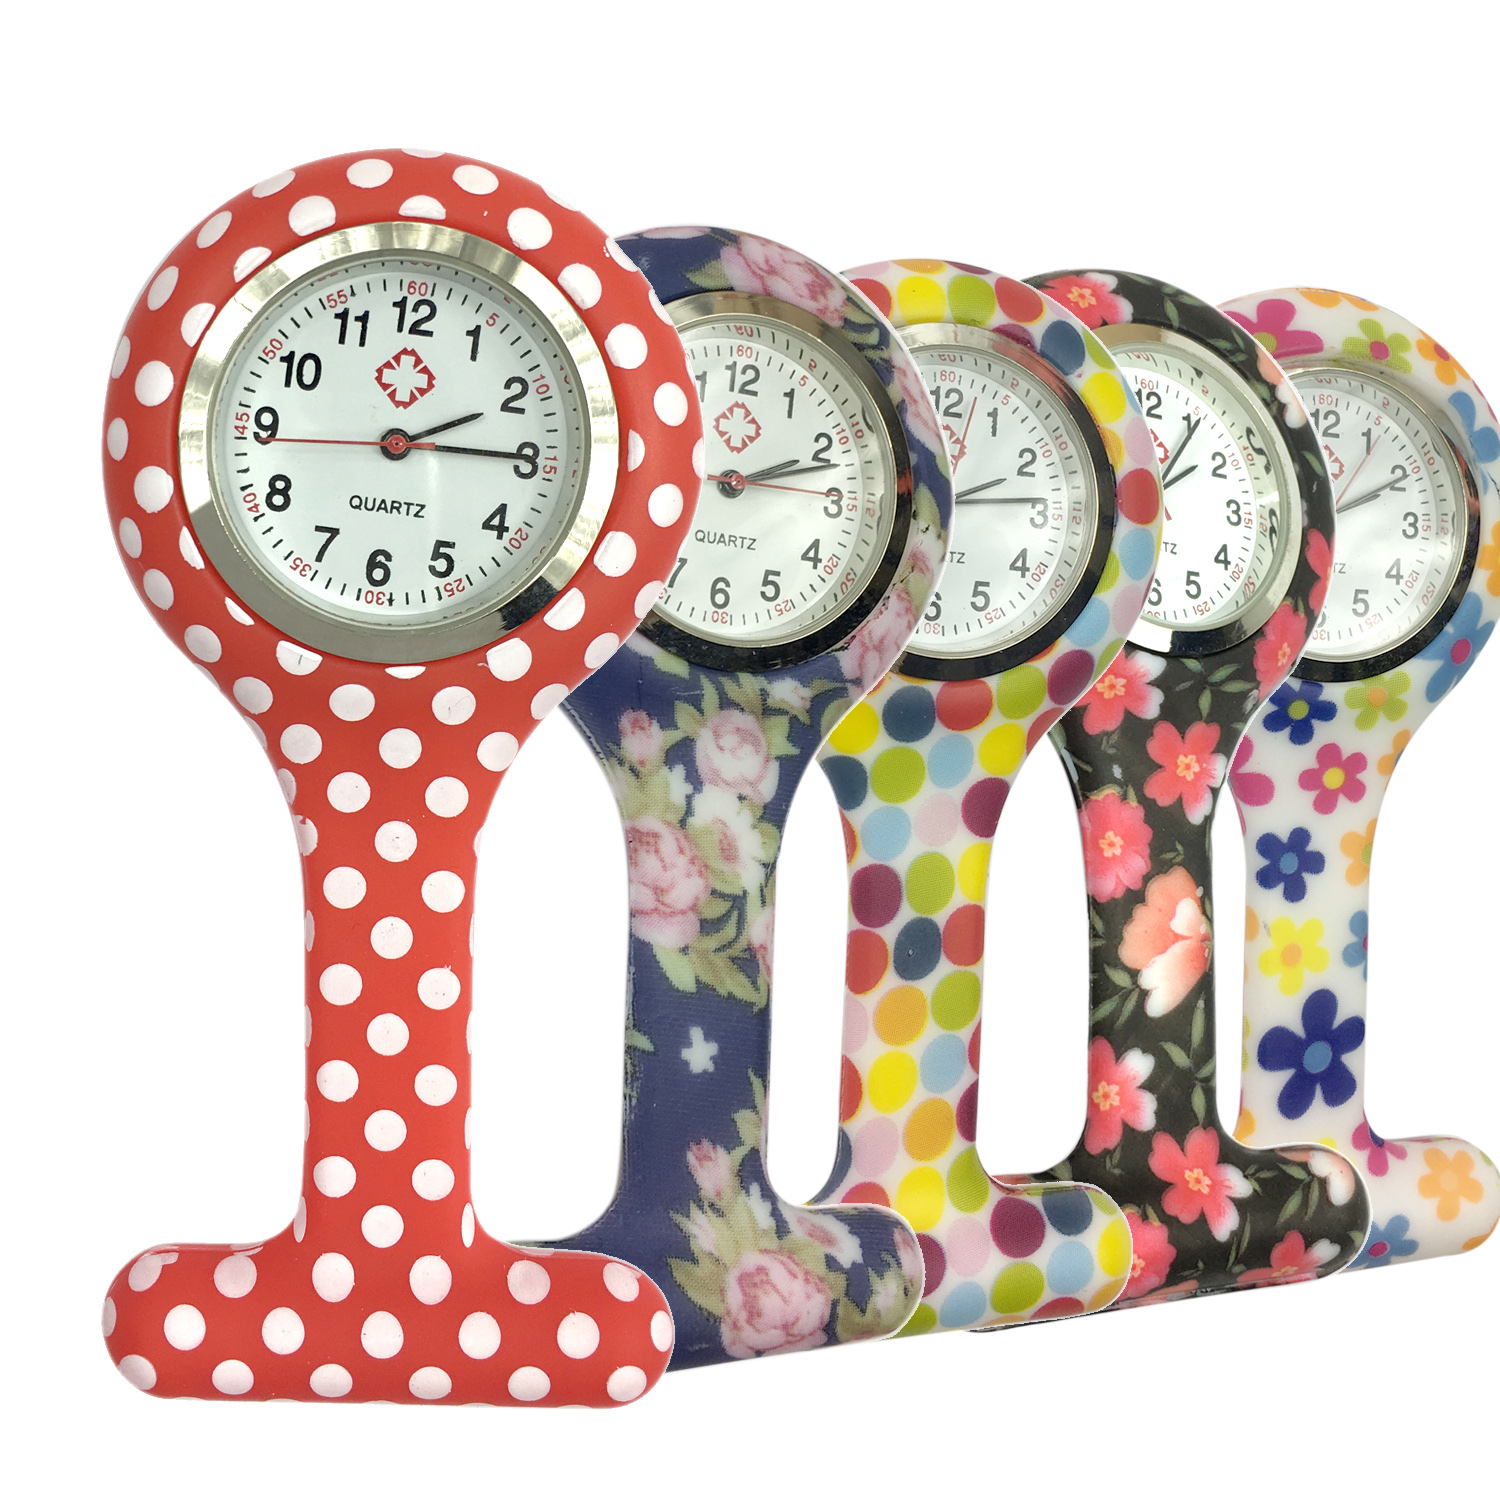 5pcs Set Round Clip Silicon Nurse Rubber Pocket FOB Watch Women Docter Hanging Medical Watch Free Shipping Gift Floral Printing